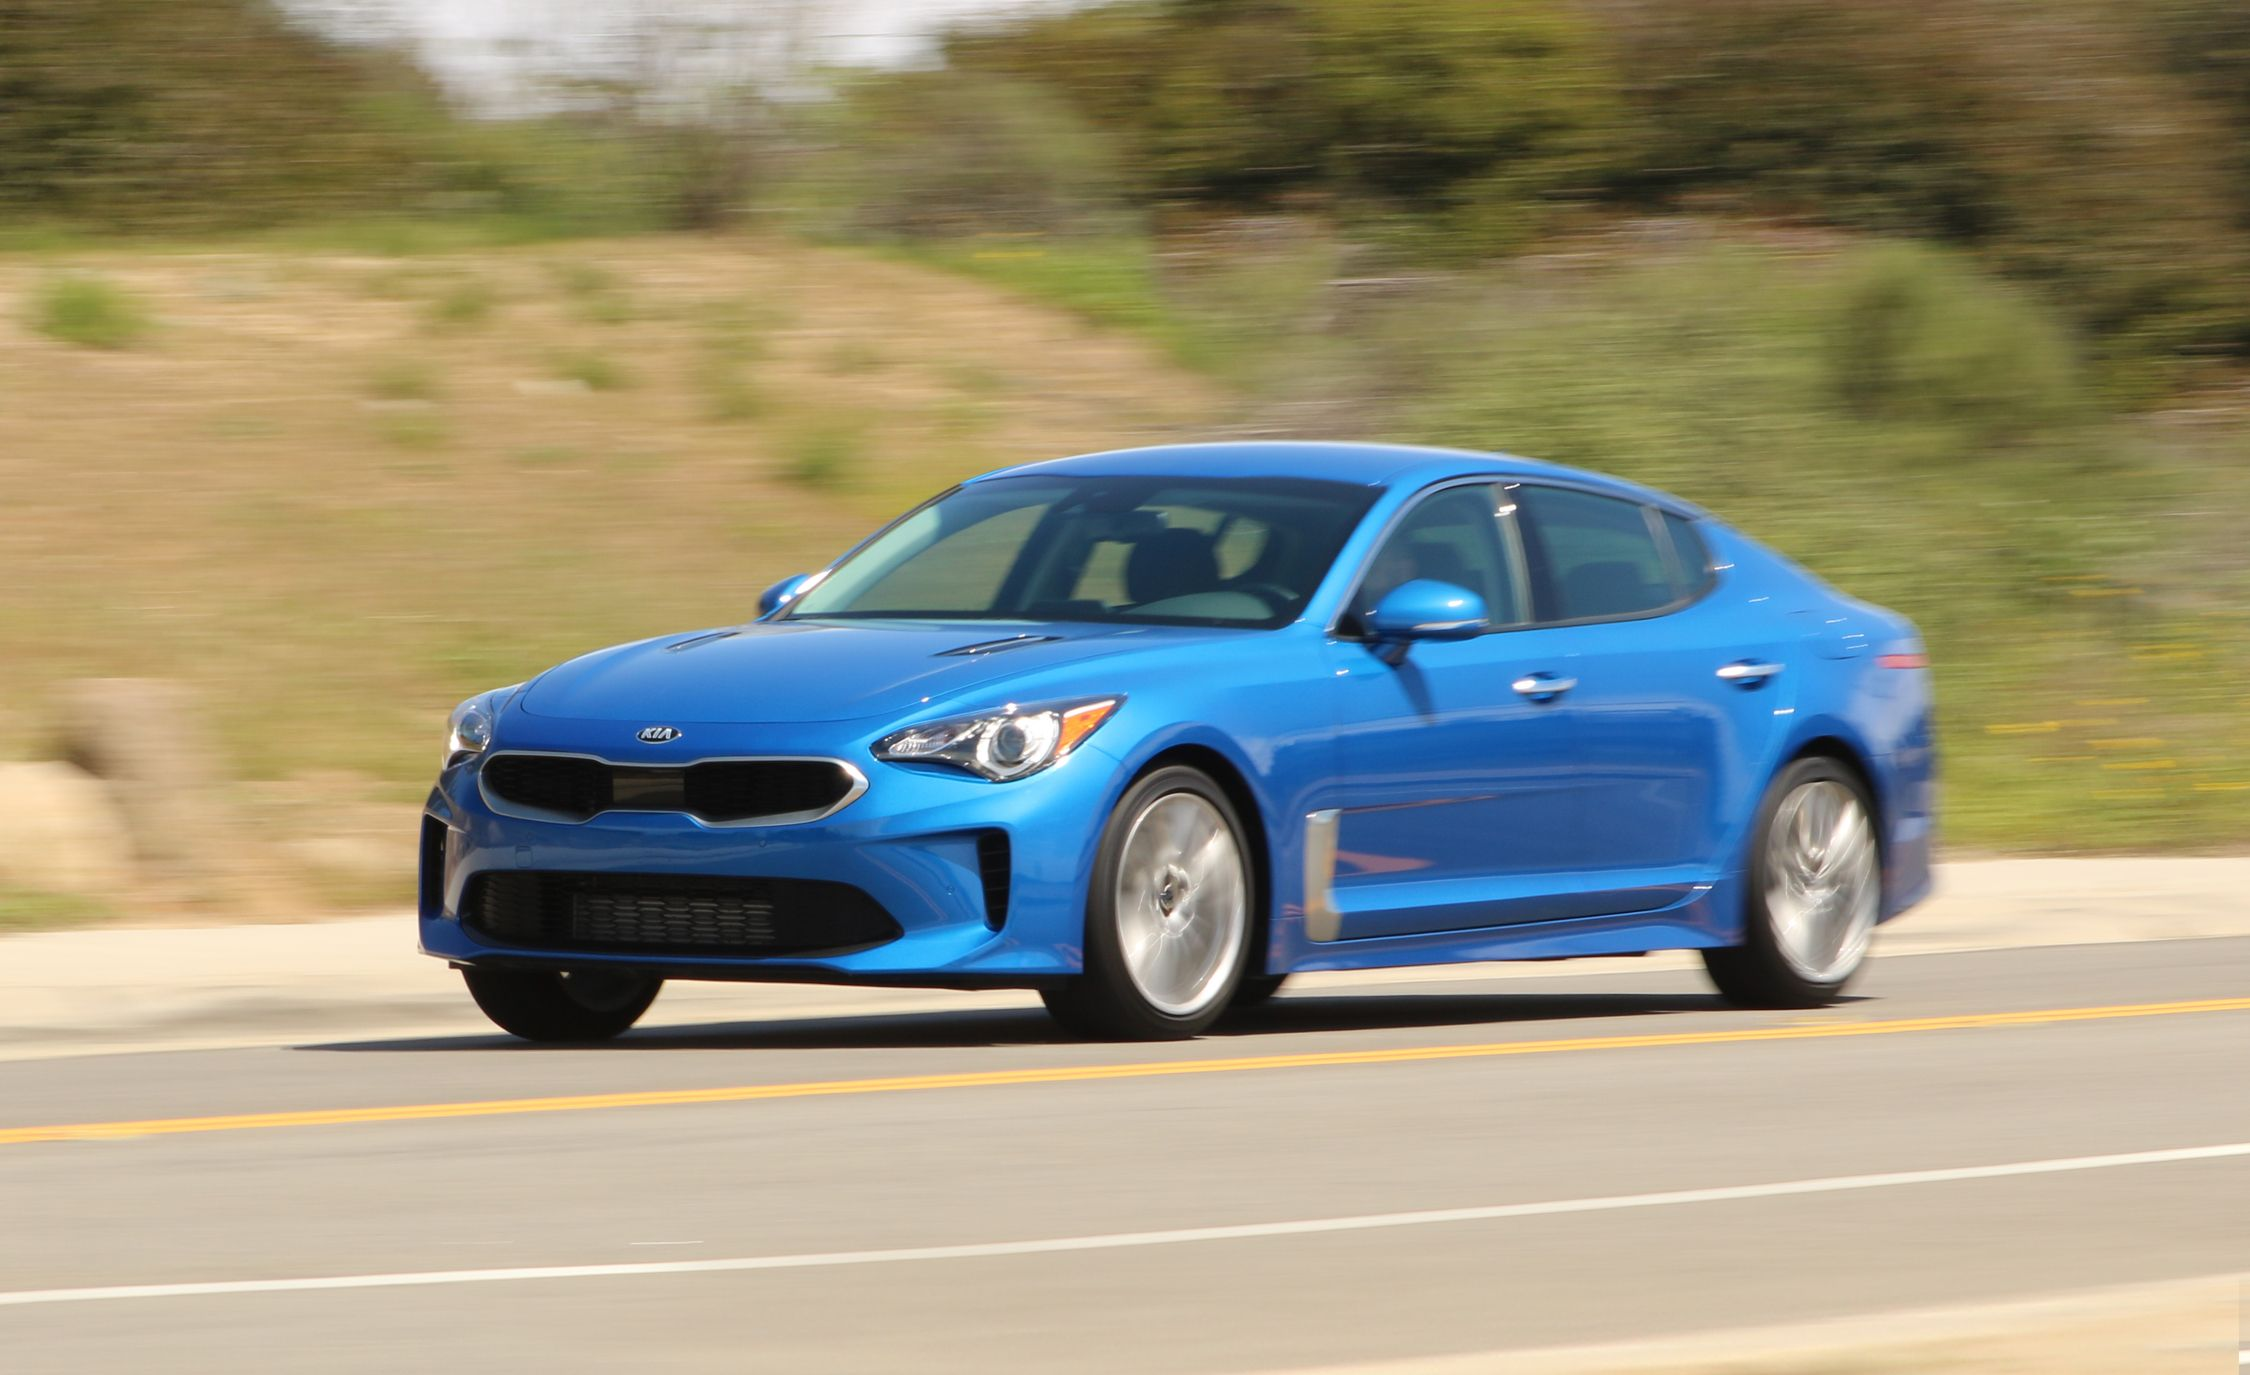 2020 Kia Stinger Reviews Kia Stinger Price Photos And Specs